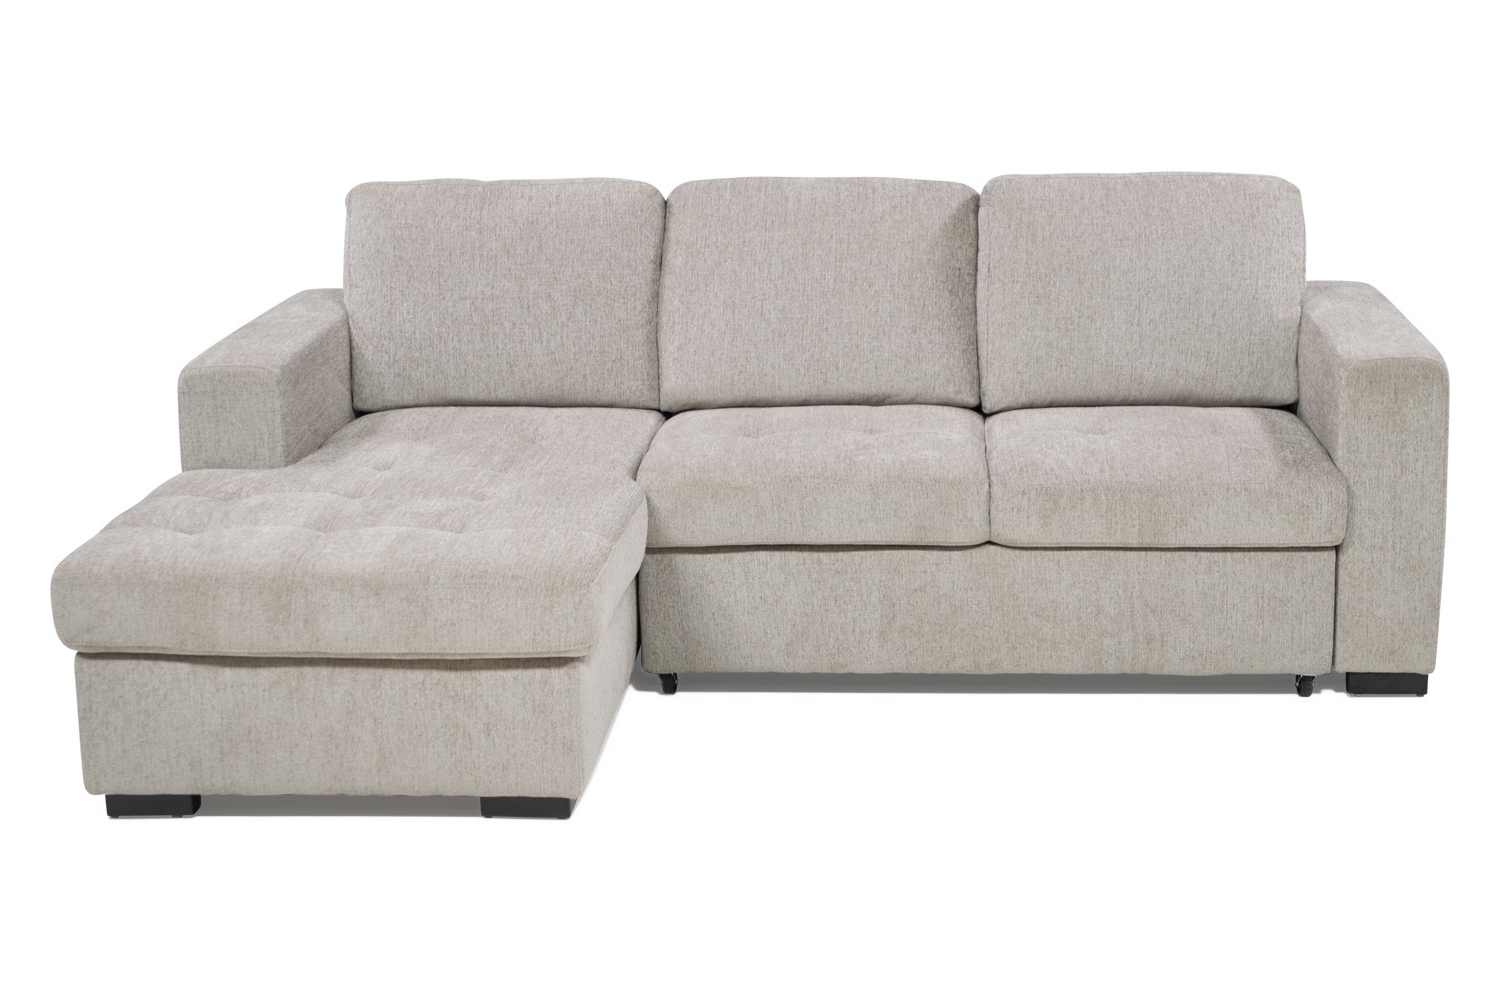 Current Everett Wa Sectional Sofas Pertaining To Living Room Furniture (View 2 of 15)